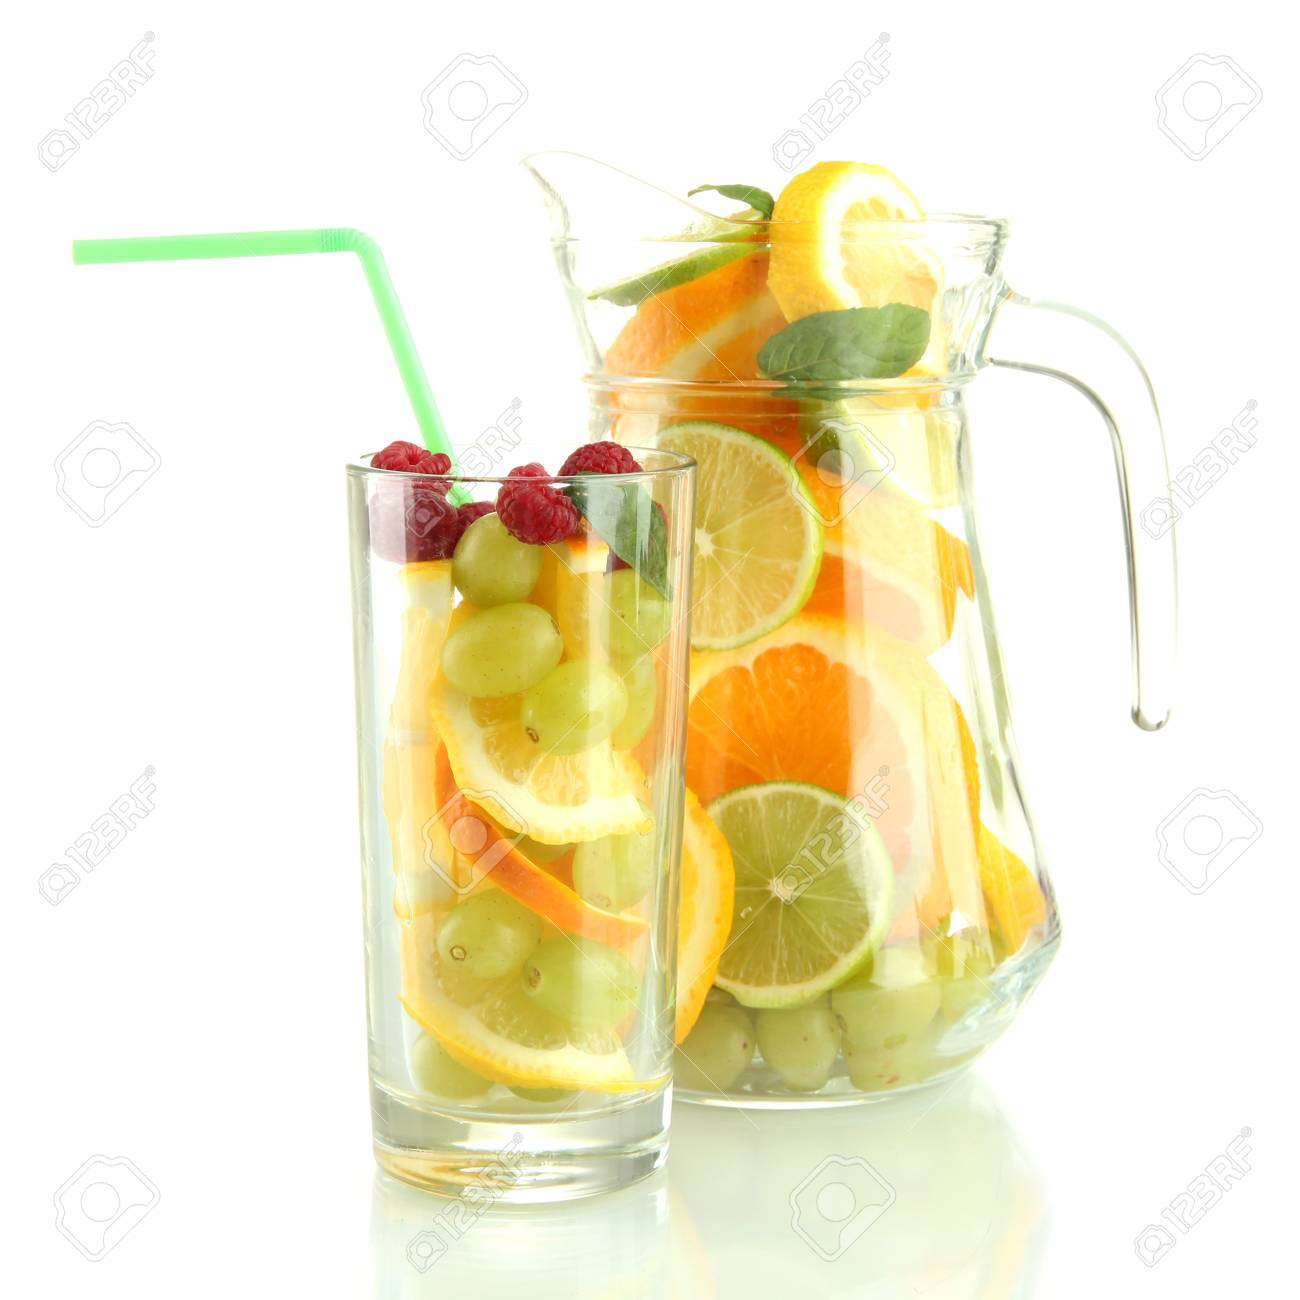 transparent jar and glass with citrus fruits and raspberries, isolated on white Stock Photo - 16591672